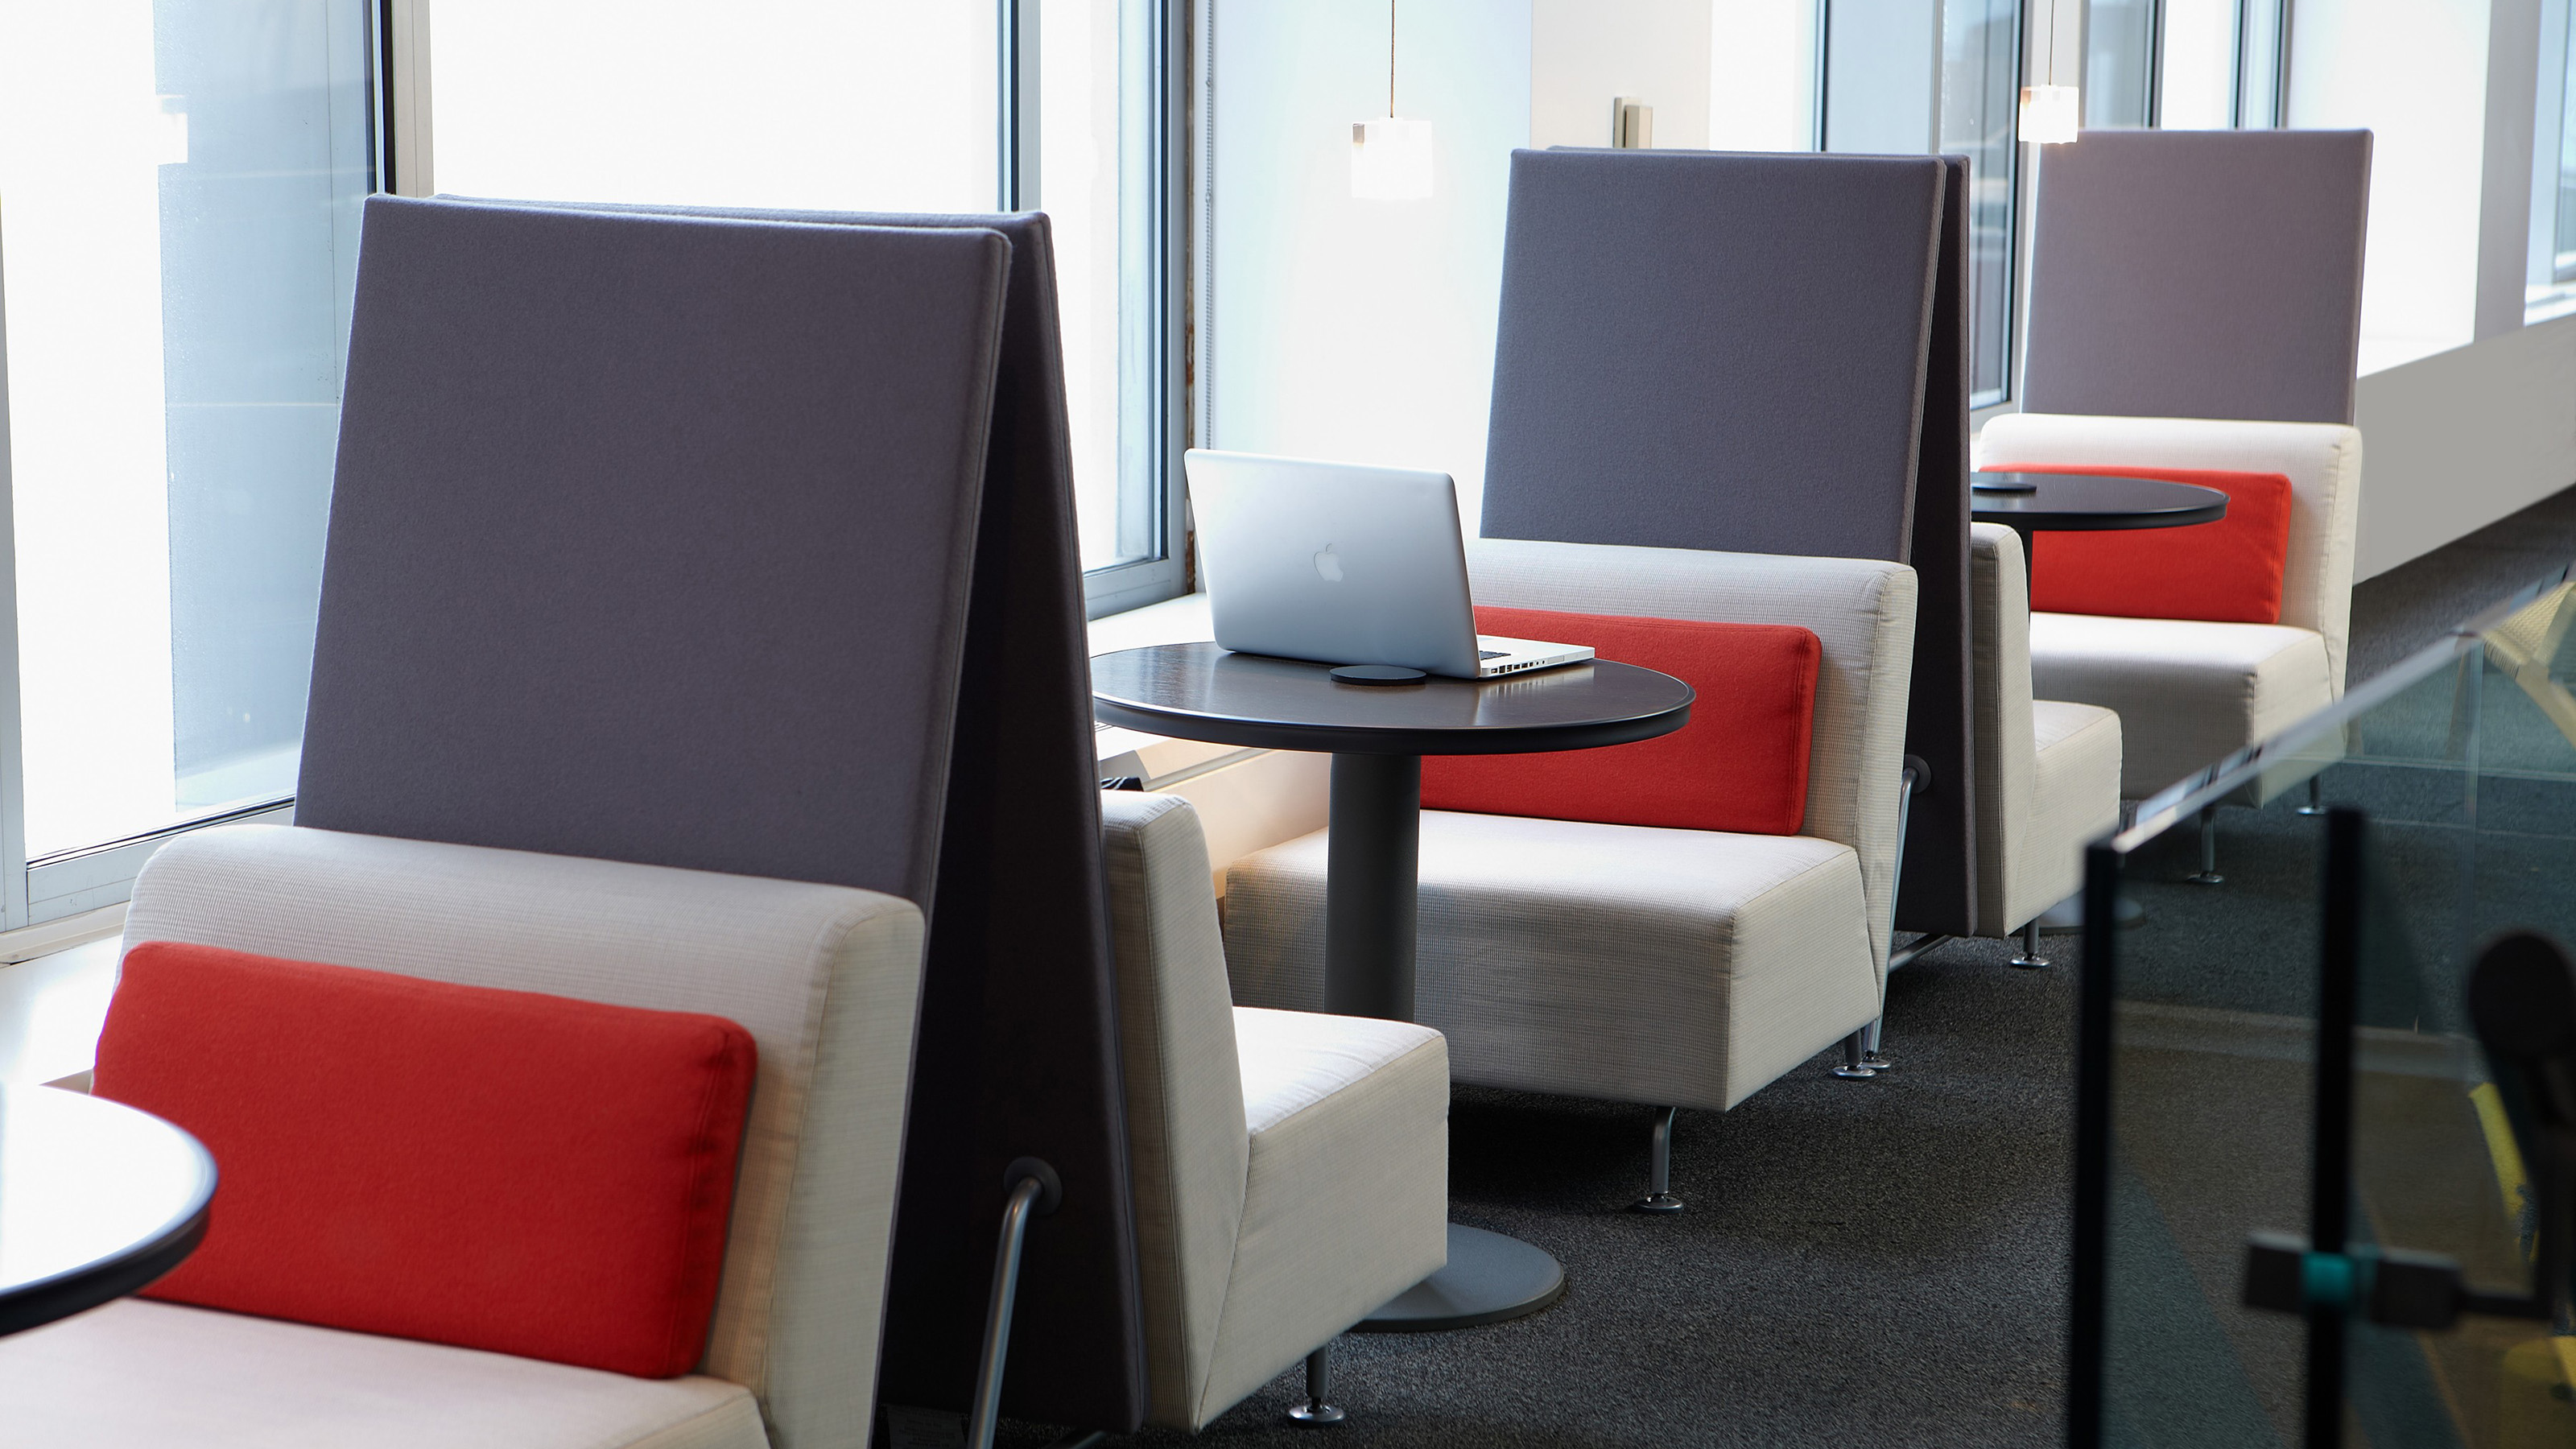 Application Design Ideas and Research for Libraries Steelcase